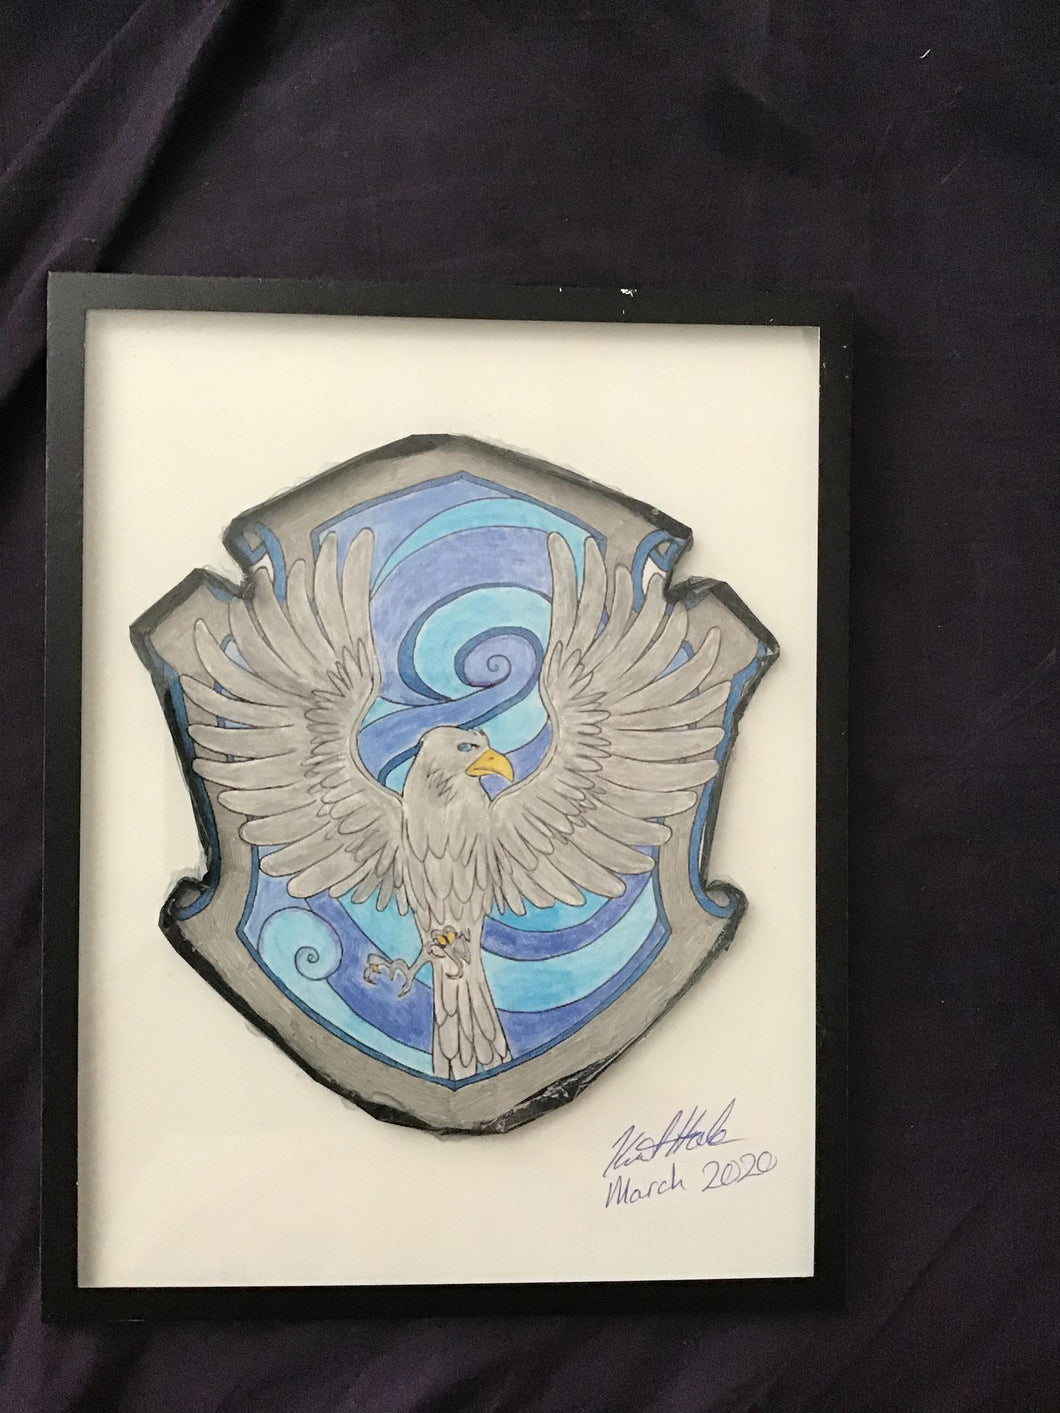 Handmade Harry Potter Ravenclaw Hogwarts Crest  8.5 x 12 in Framed VHS Upcycle Art